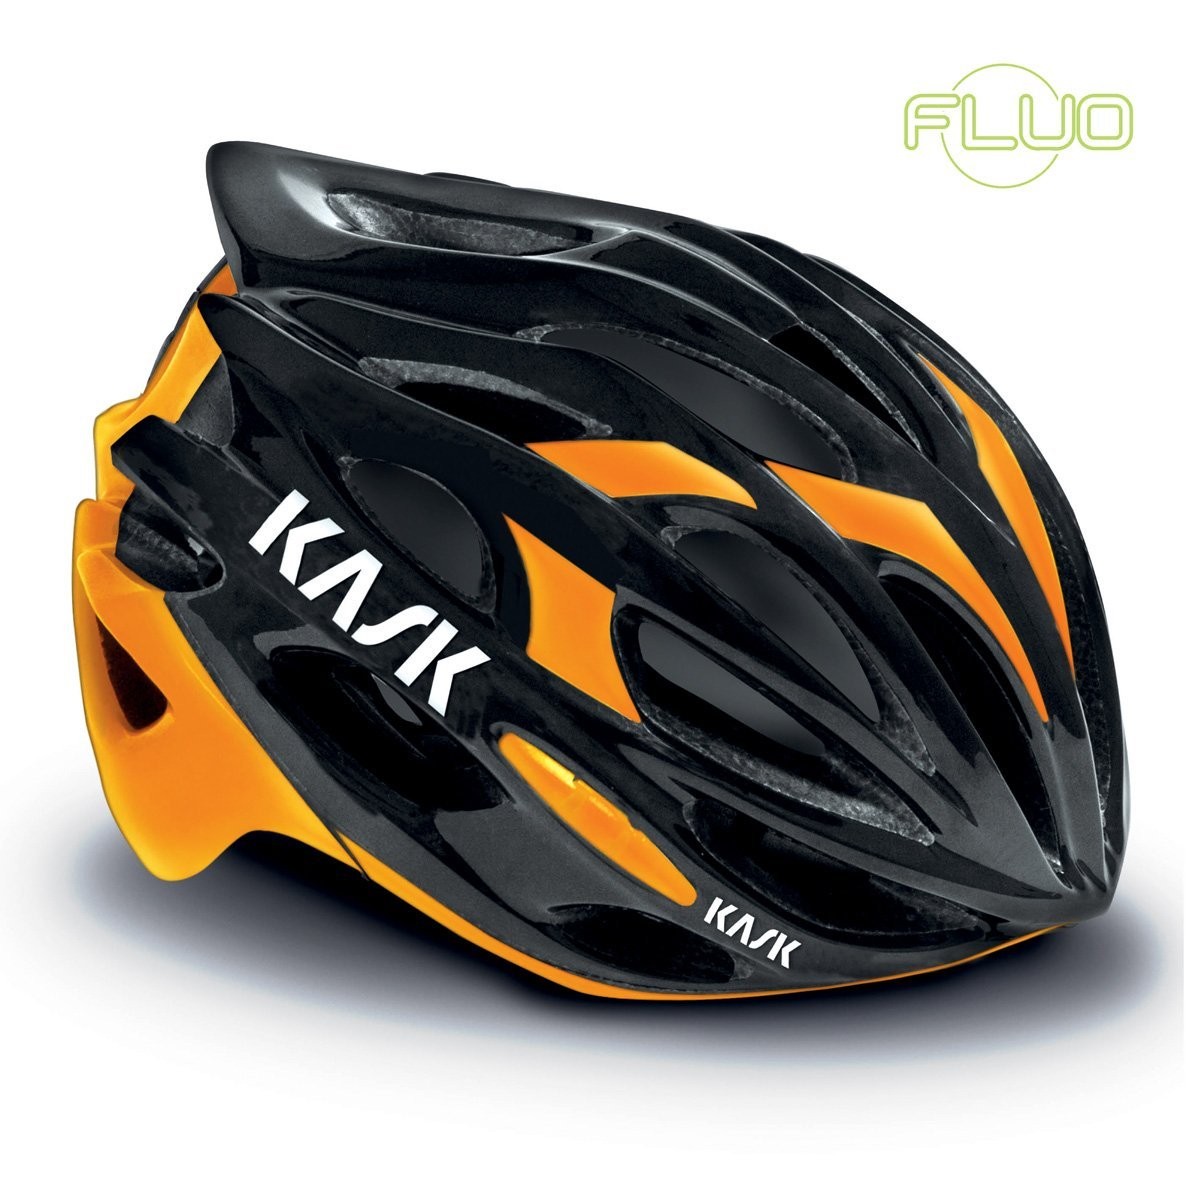 Orange Kask Bicycle Helmets